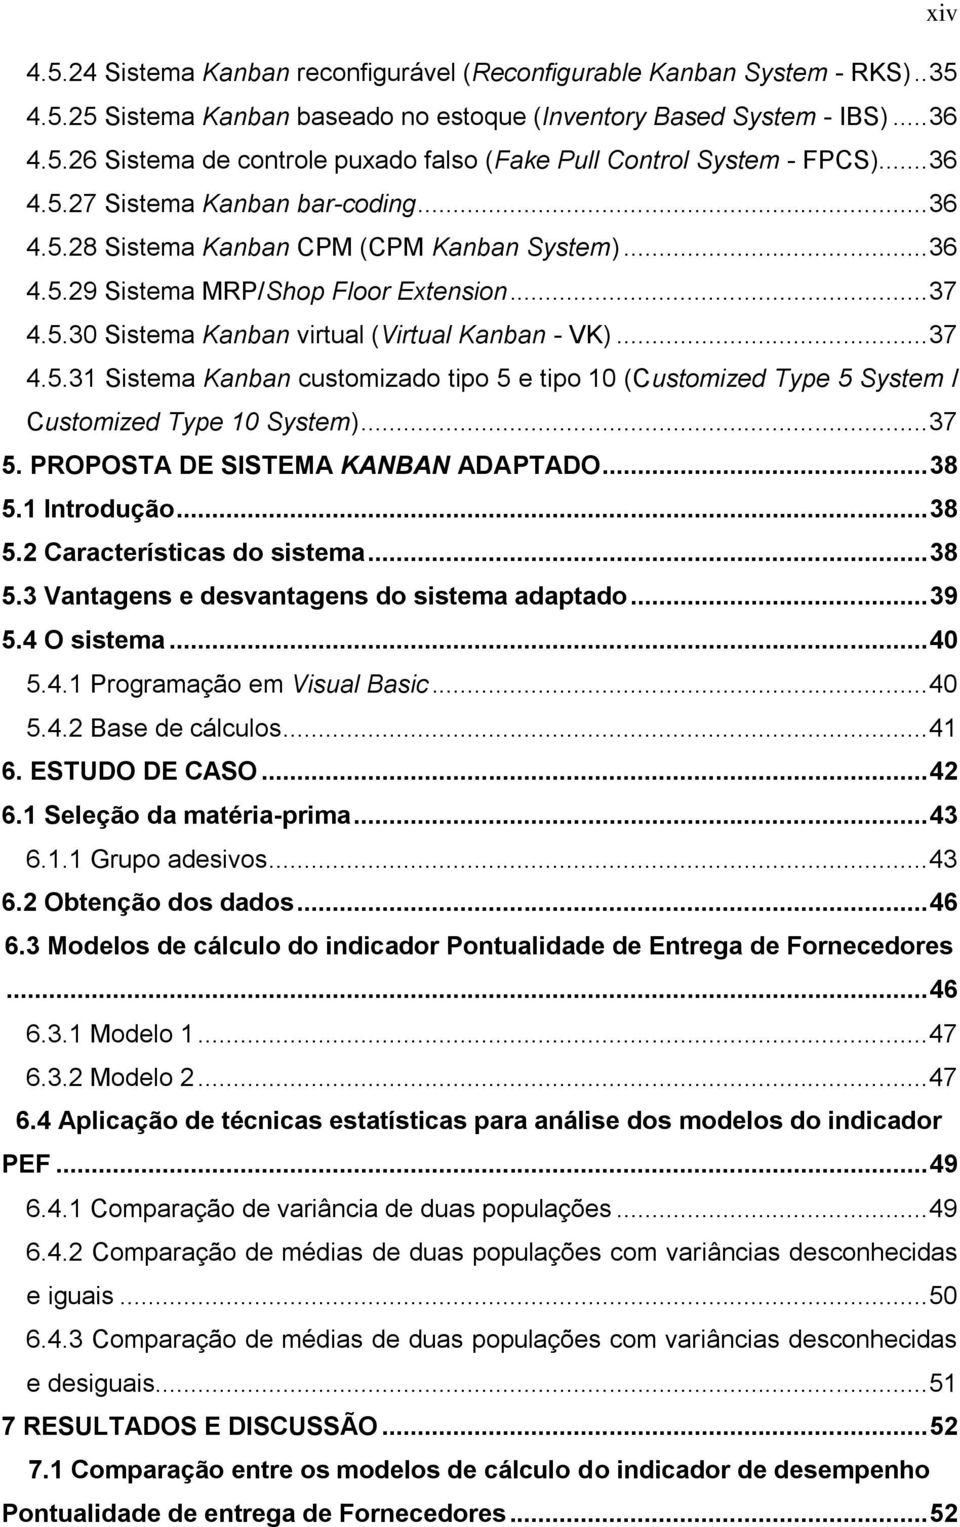 .. 37 4.5.31 Sistema Kanban customizado tipo 5 e tipo 10 (Customized Type 5 System / Customized Type 10 System)... 37 5. PROPOSTA DE SISTEMA KANBAN ADAPTADO... 38 5.1 Introdução... 38 5.2 Características do sistema.